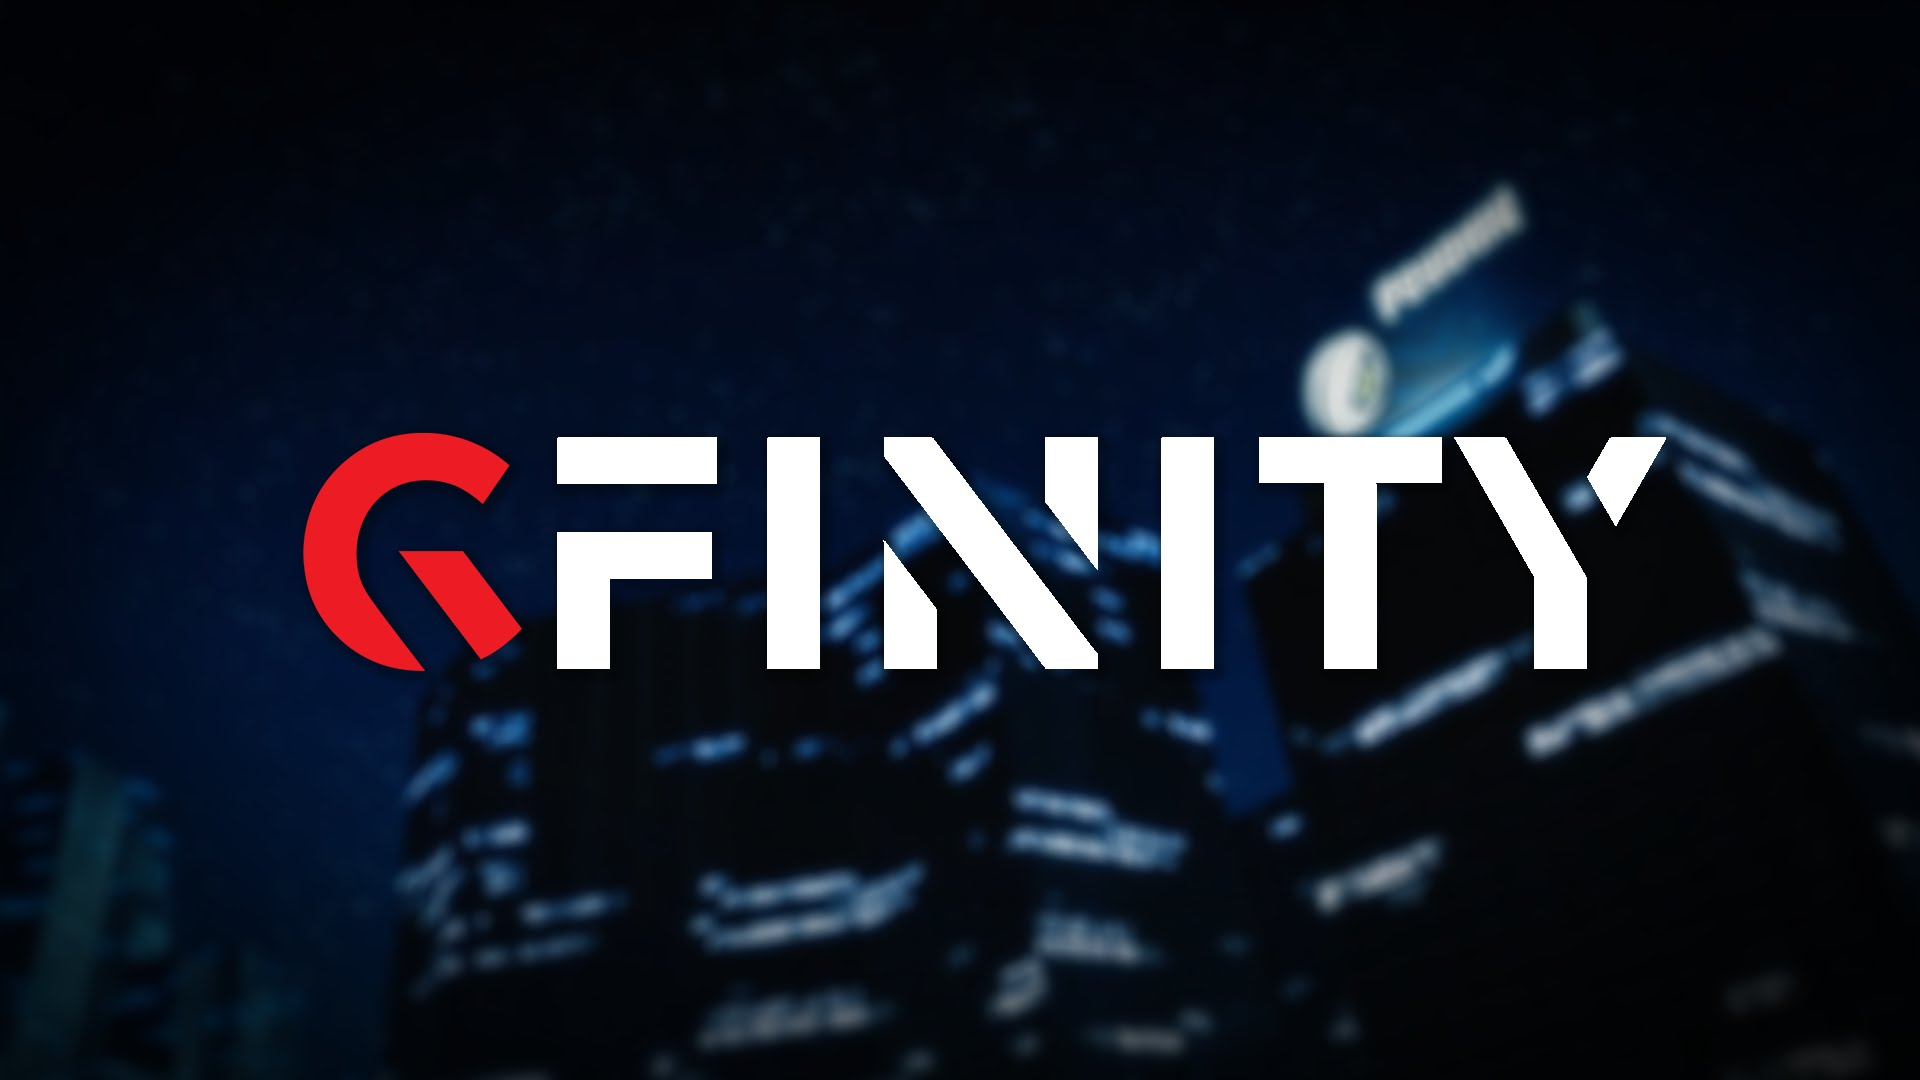 Gfinity Makes Moves Into North America with CEVO Acquisition - #GTUSA 3